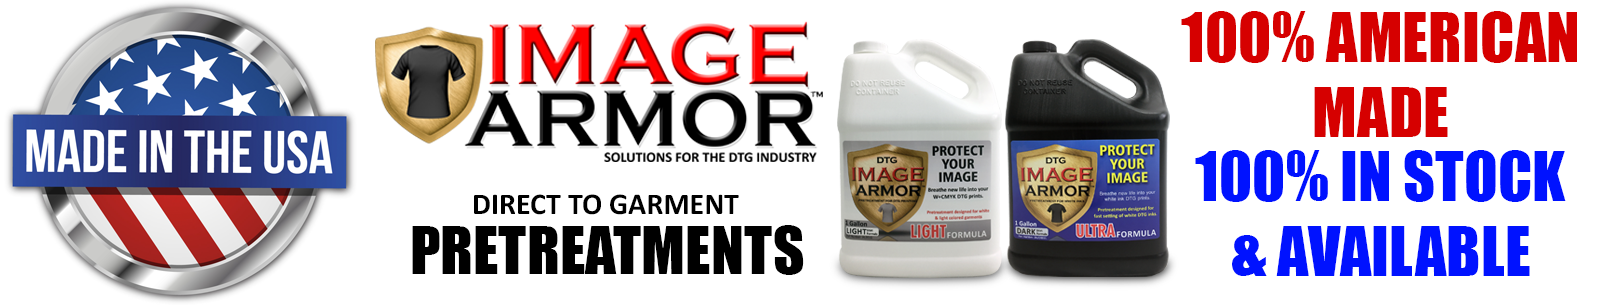 Image Armor Products are Made 100% in the USA